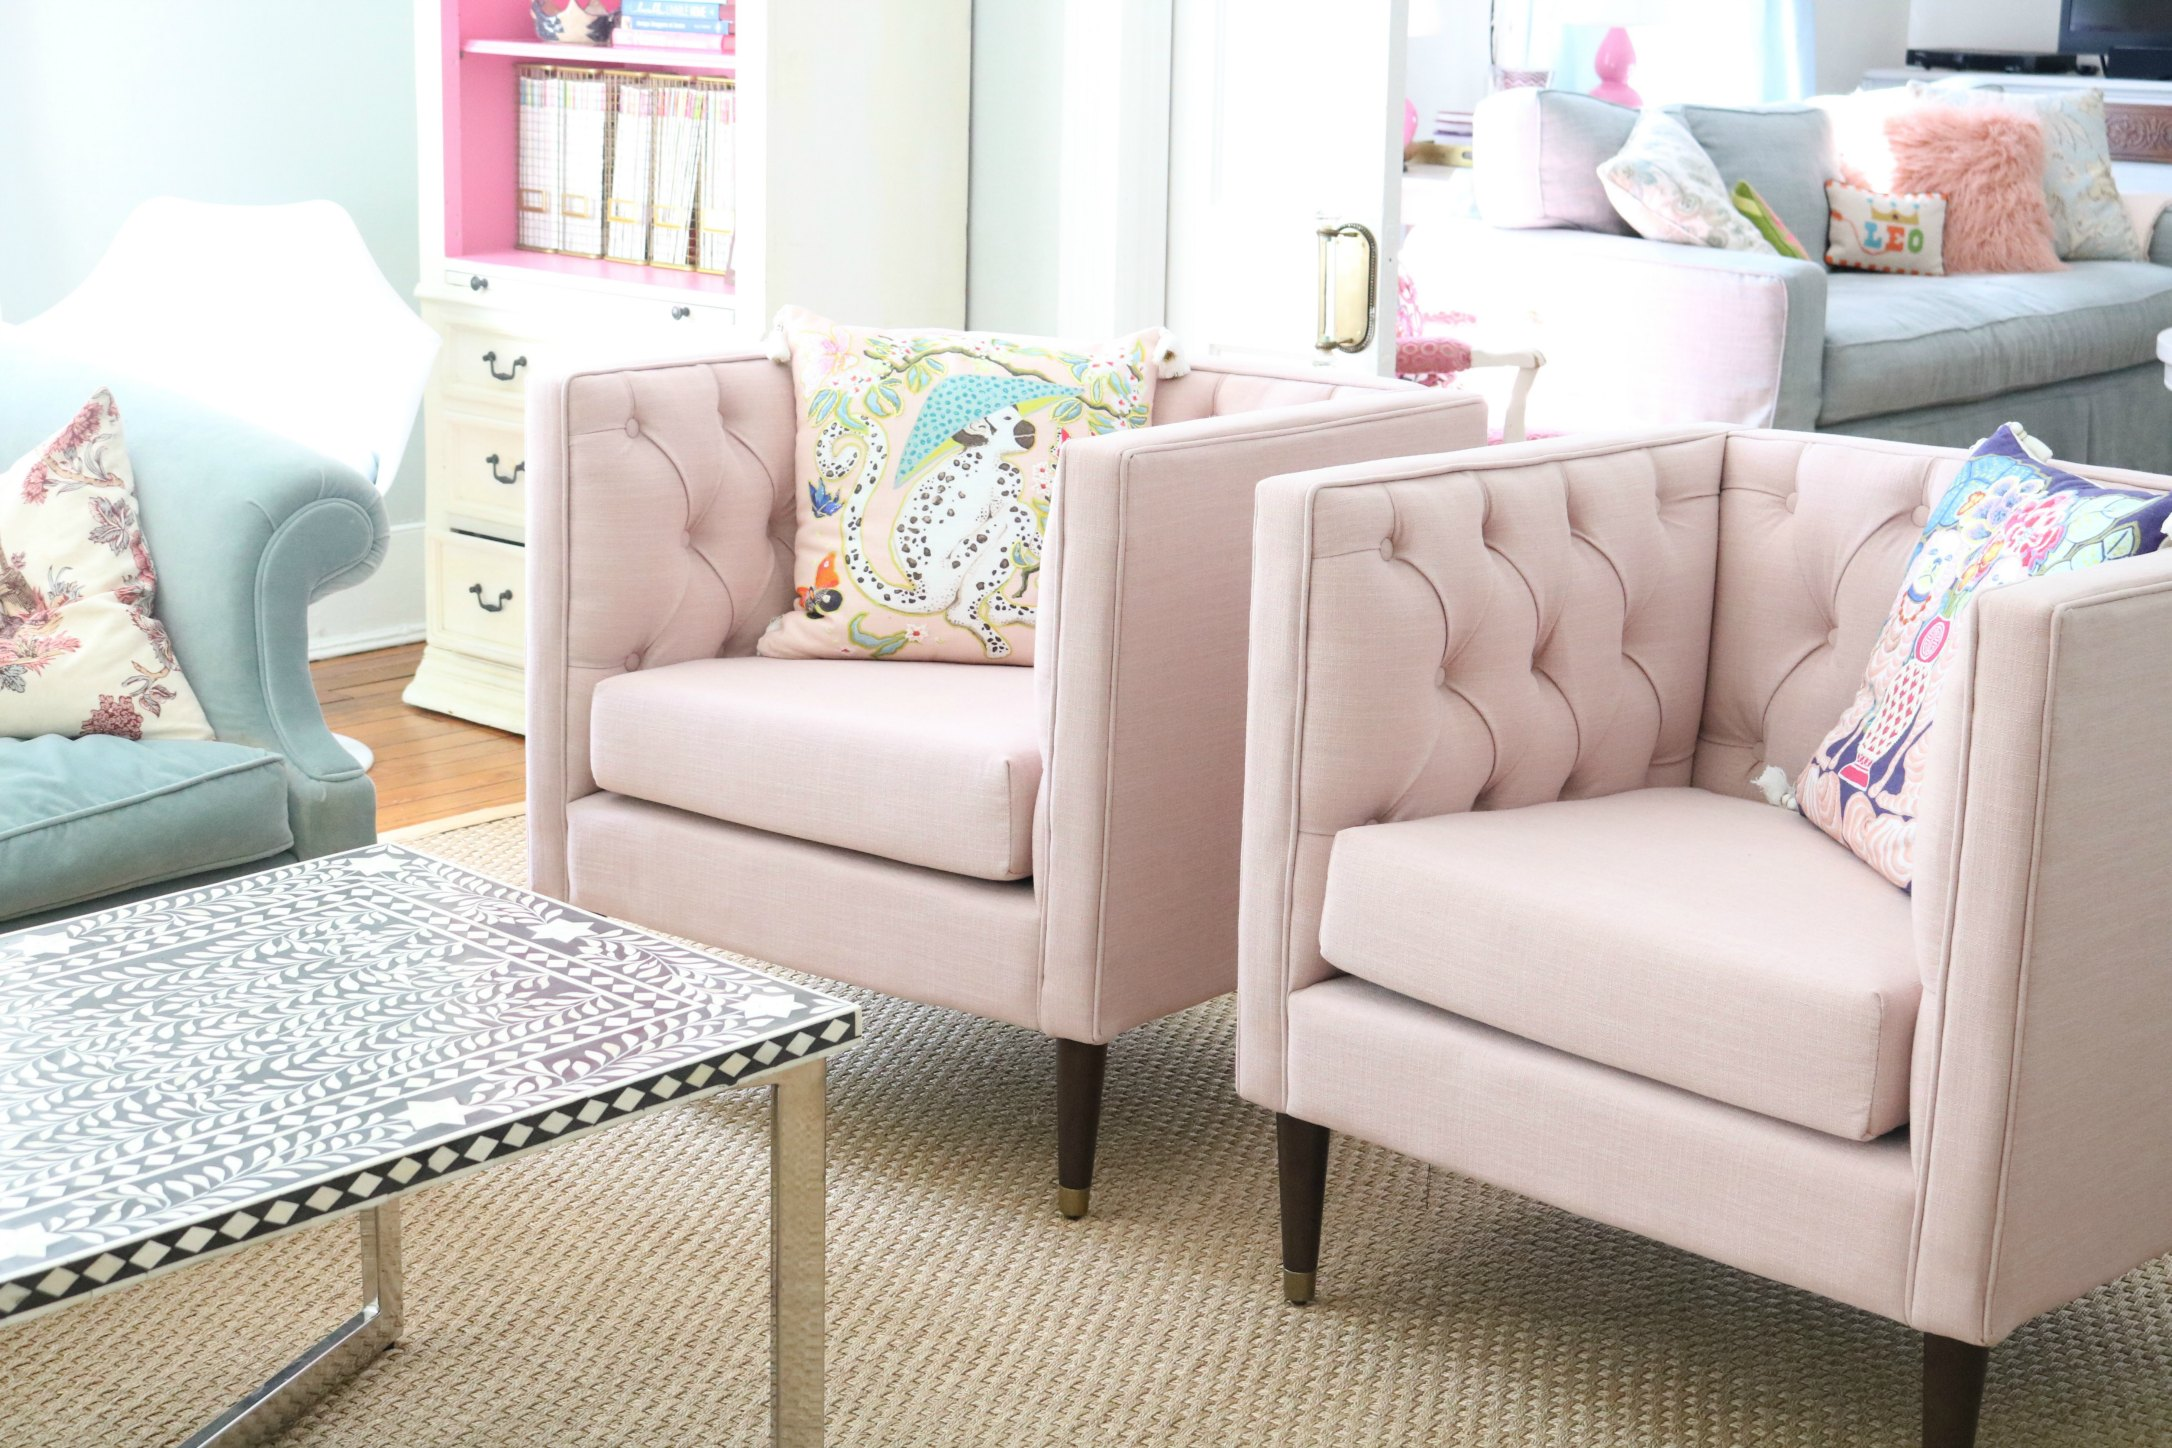 MY NEW PINK CHAIRS U2013 NATE BERKUS FOR TARGET